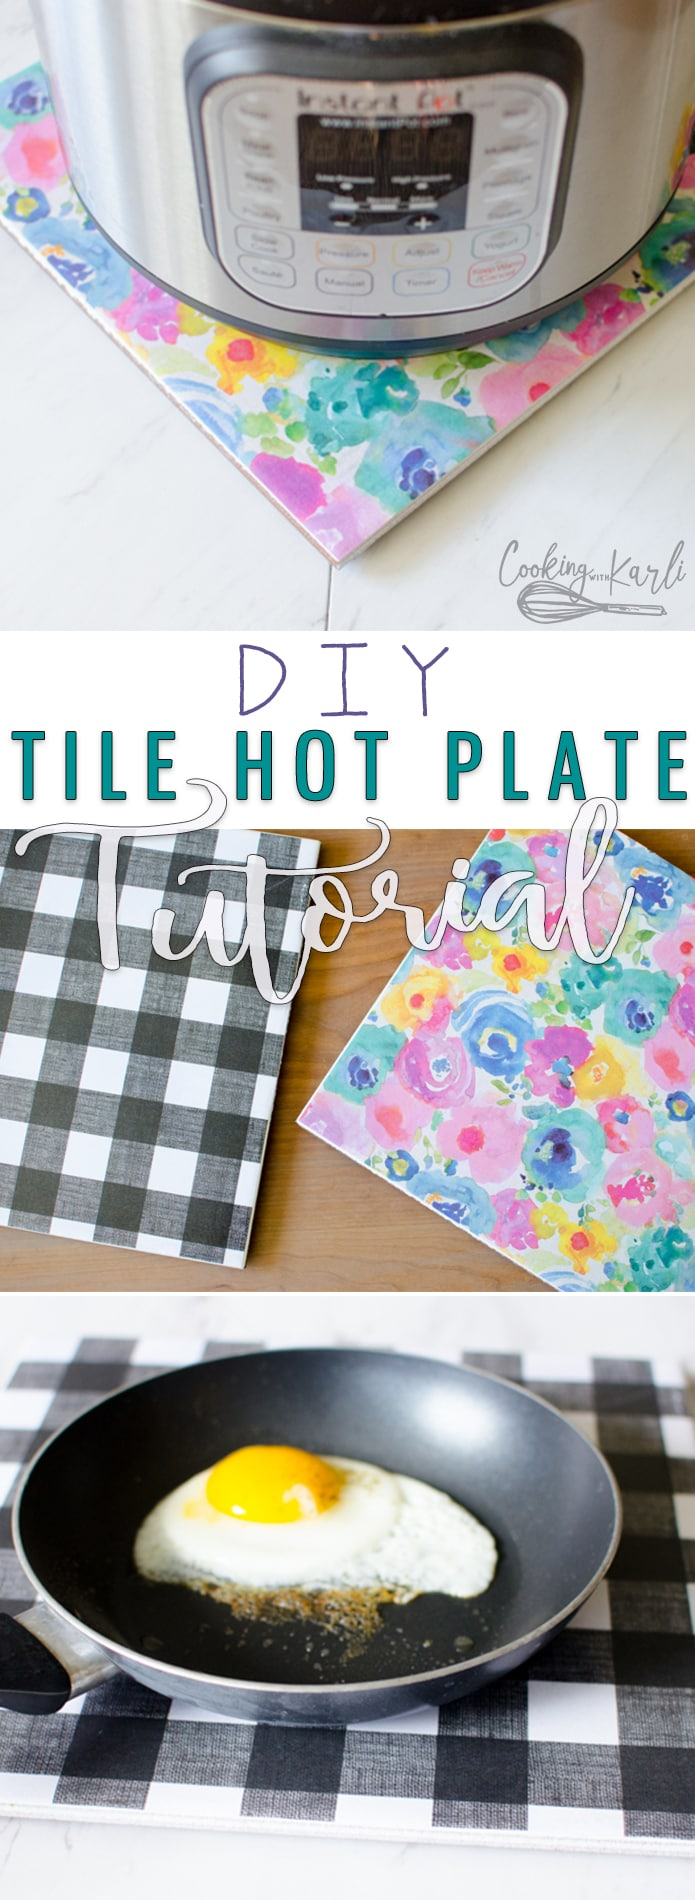 Don't want to set a hot dish on the counter? Want something underneath your Instant Pot while on the stove? This DIY Tile Hot Plate is the perfect solution! Easy, affordable and ADORABLE! Customize your hot plate to match the decor of your kitchen! |Cooking with Karli| #diy #hotplate #hotpad #instantpot #tile #modpodge